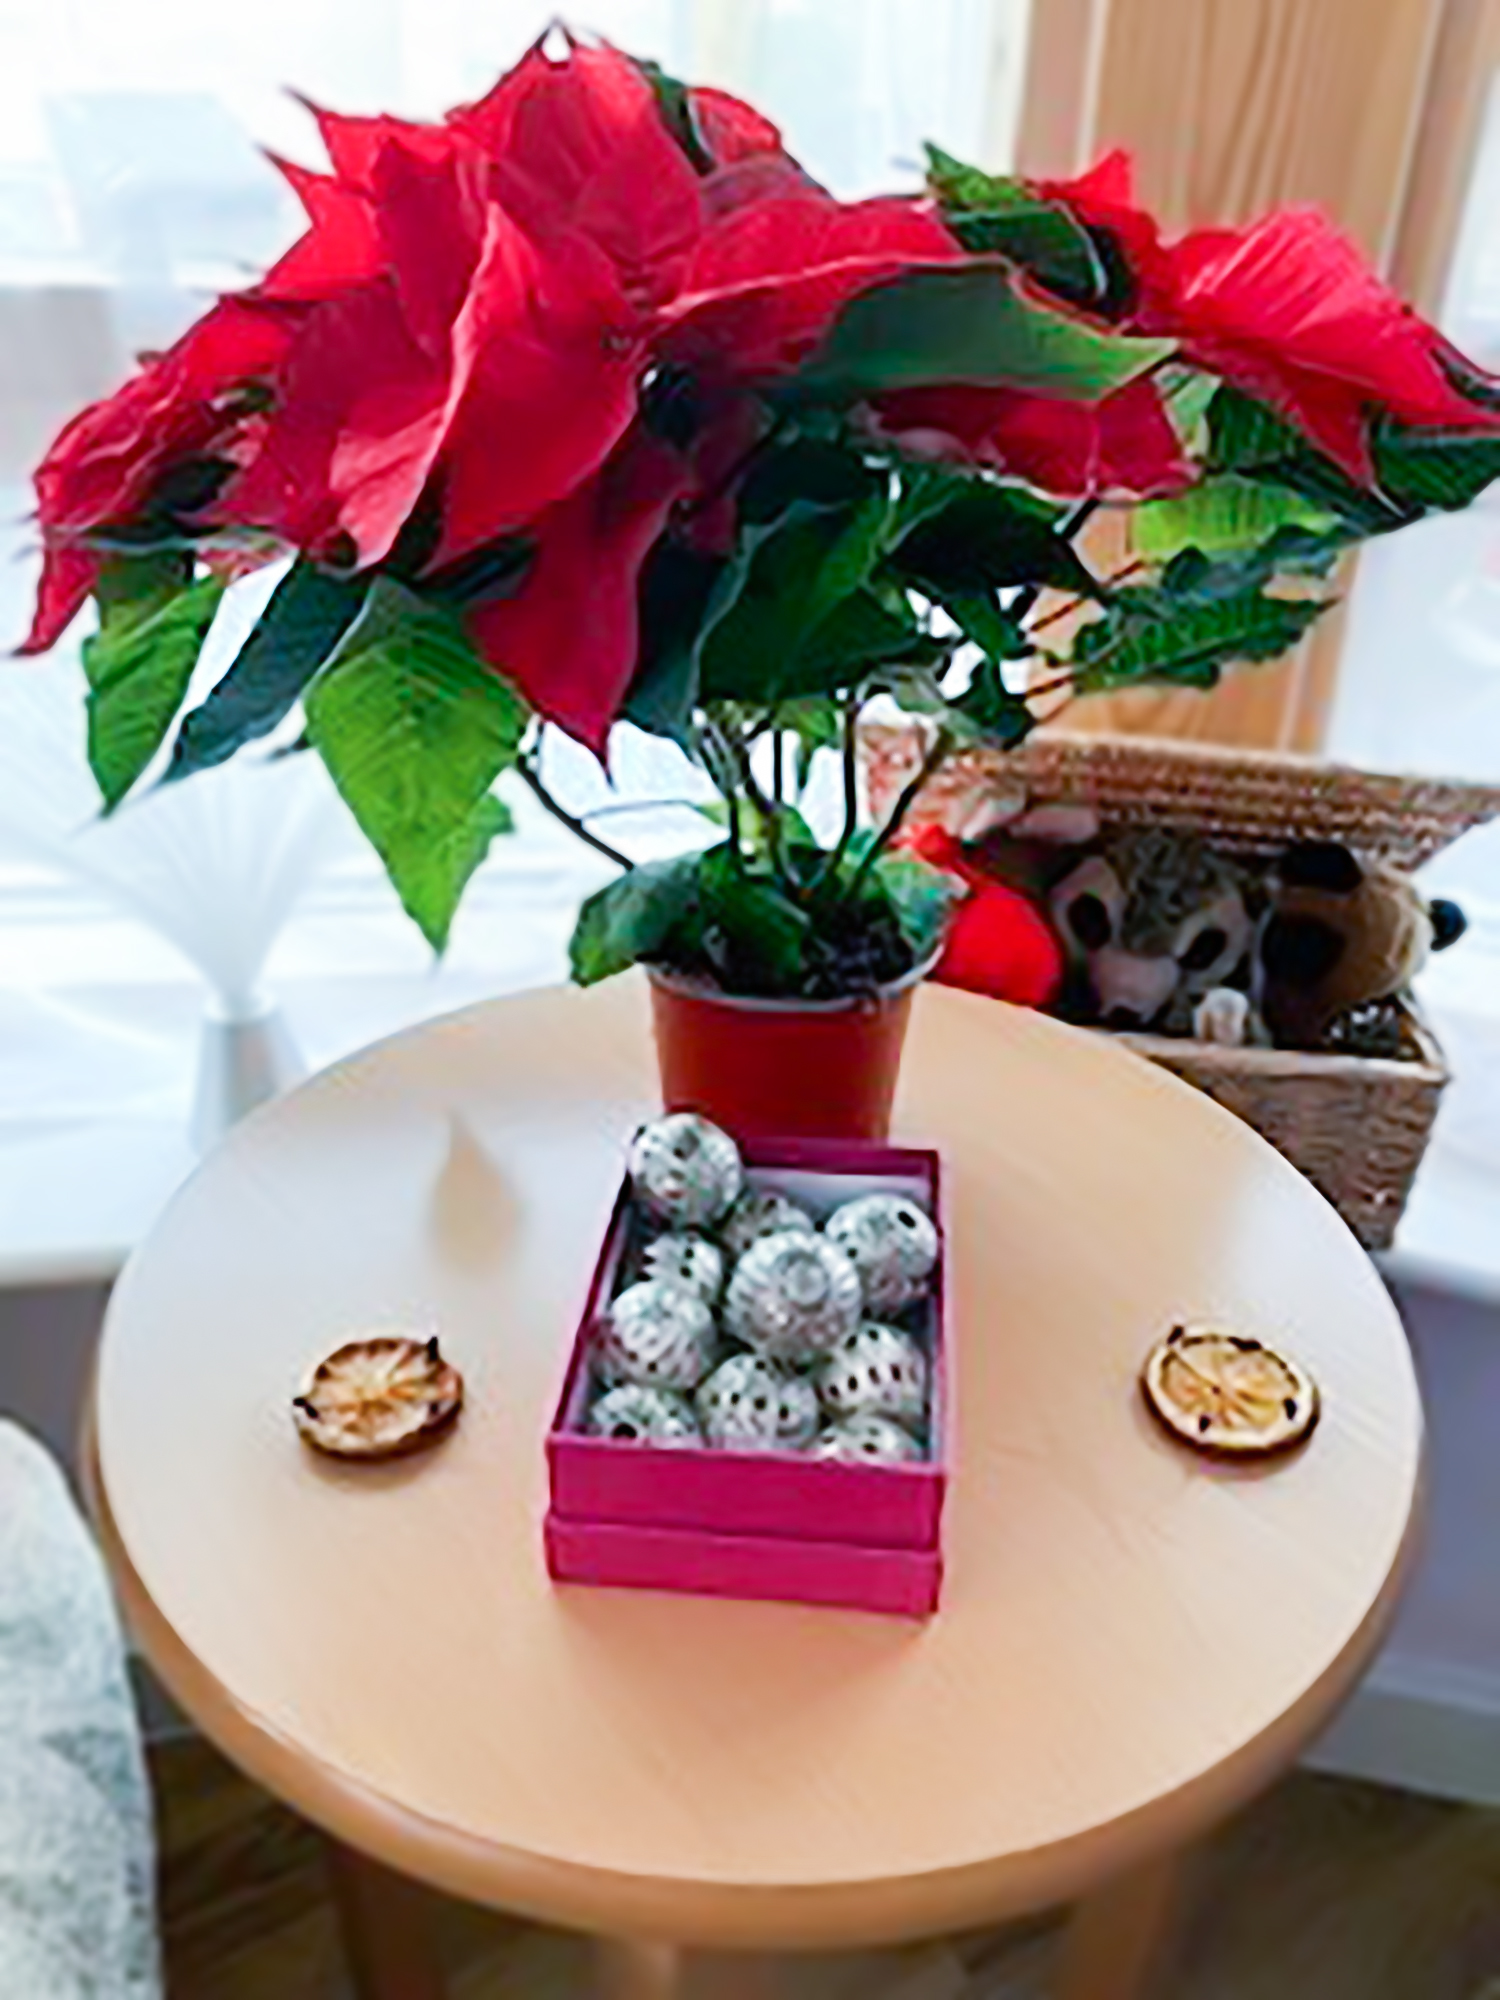 A picture of Poinsettias plants used during the festive Namaste session